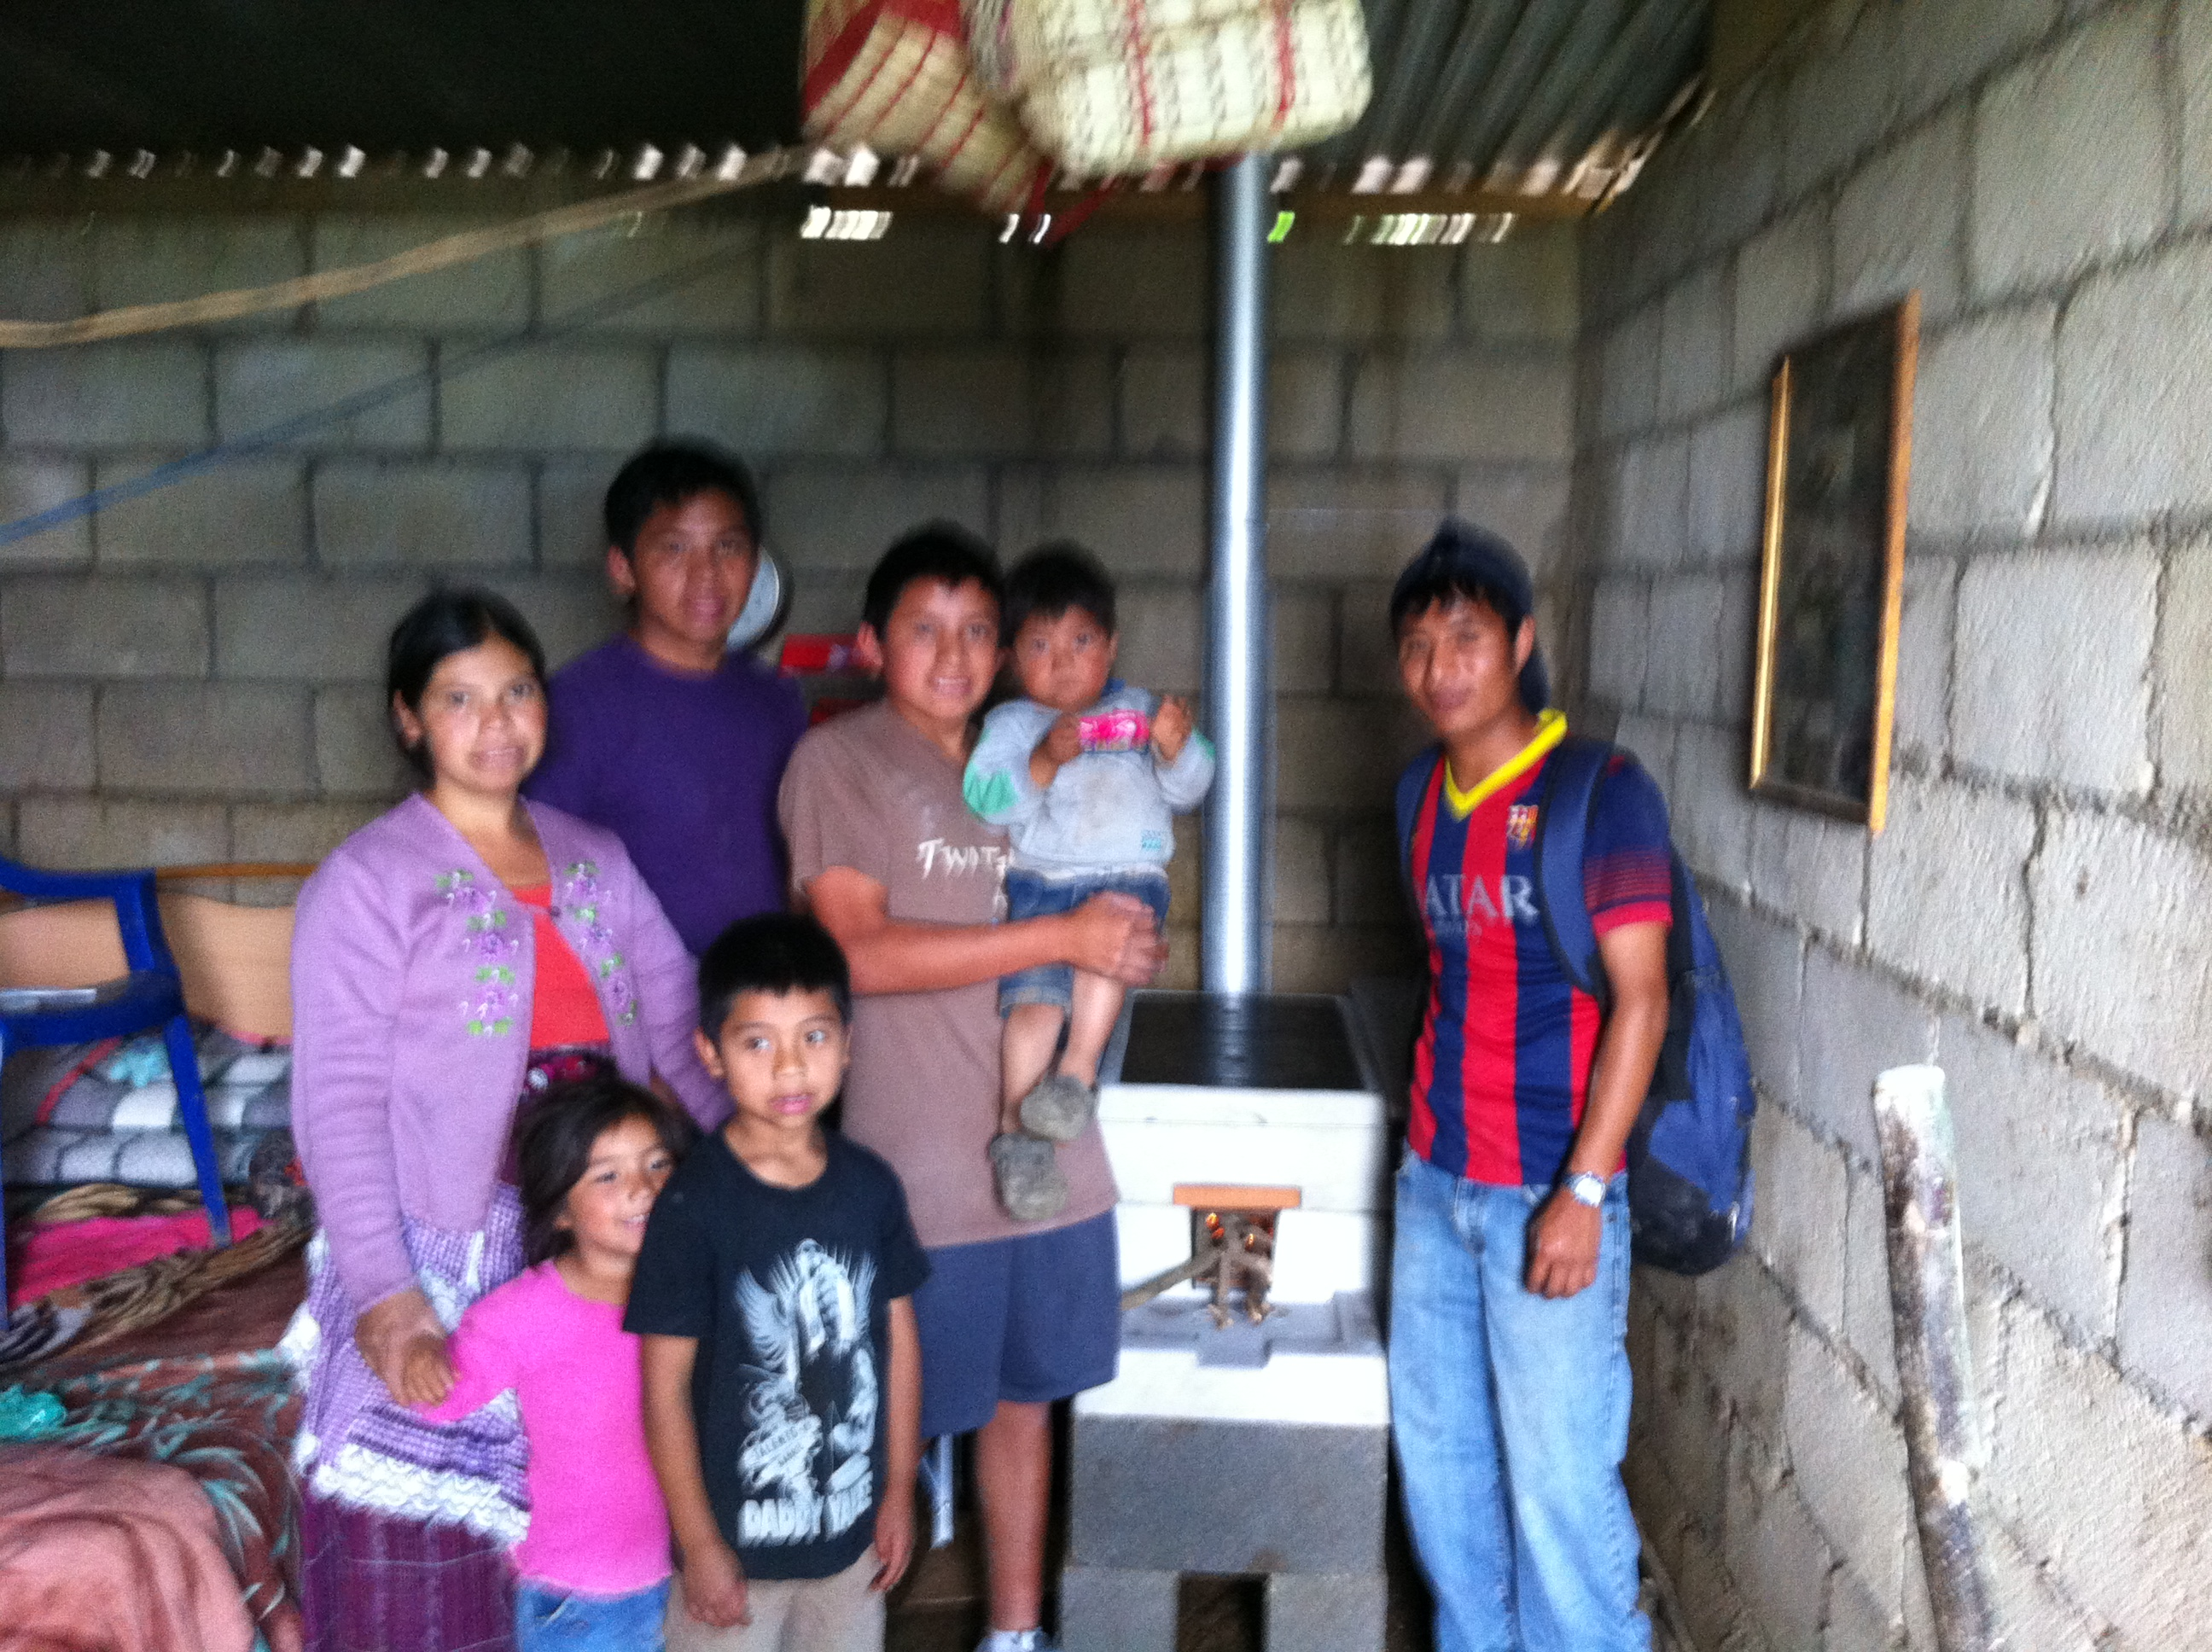 marcos, benjamin, & brian after installing the stove for the lady who lost her baby